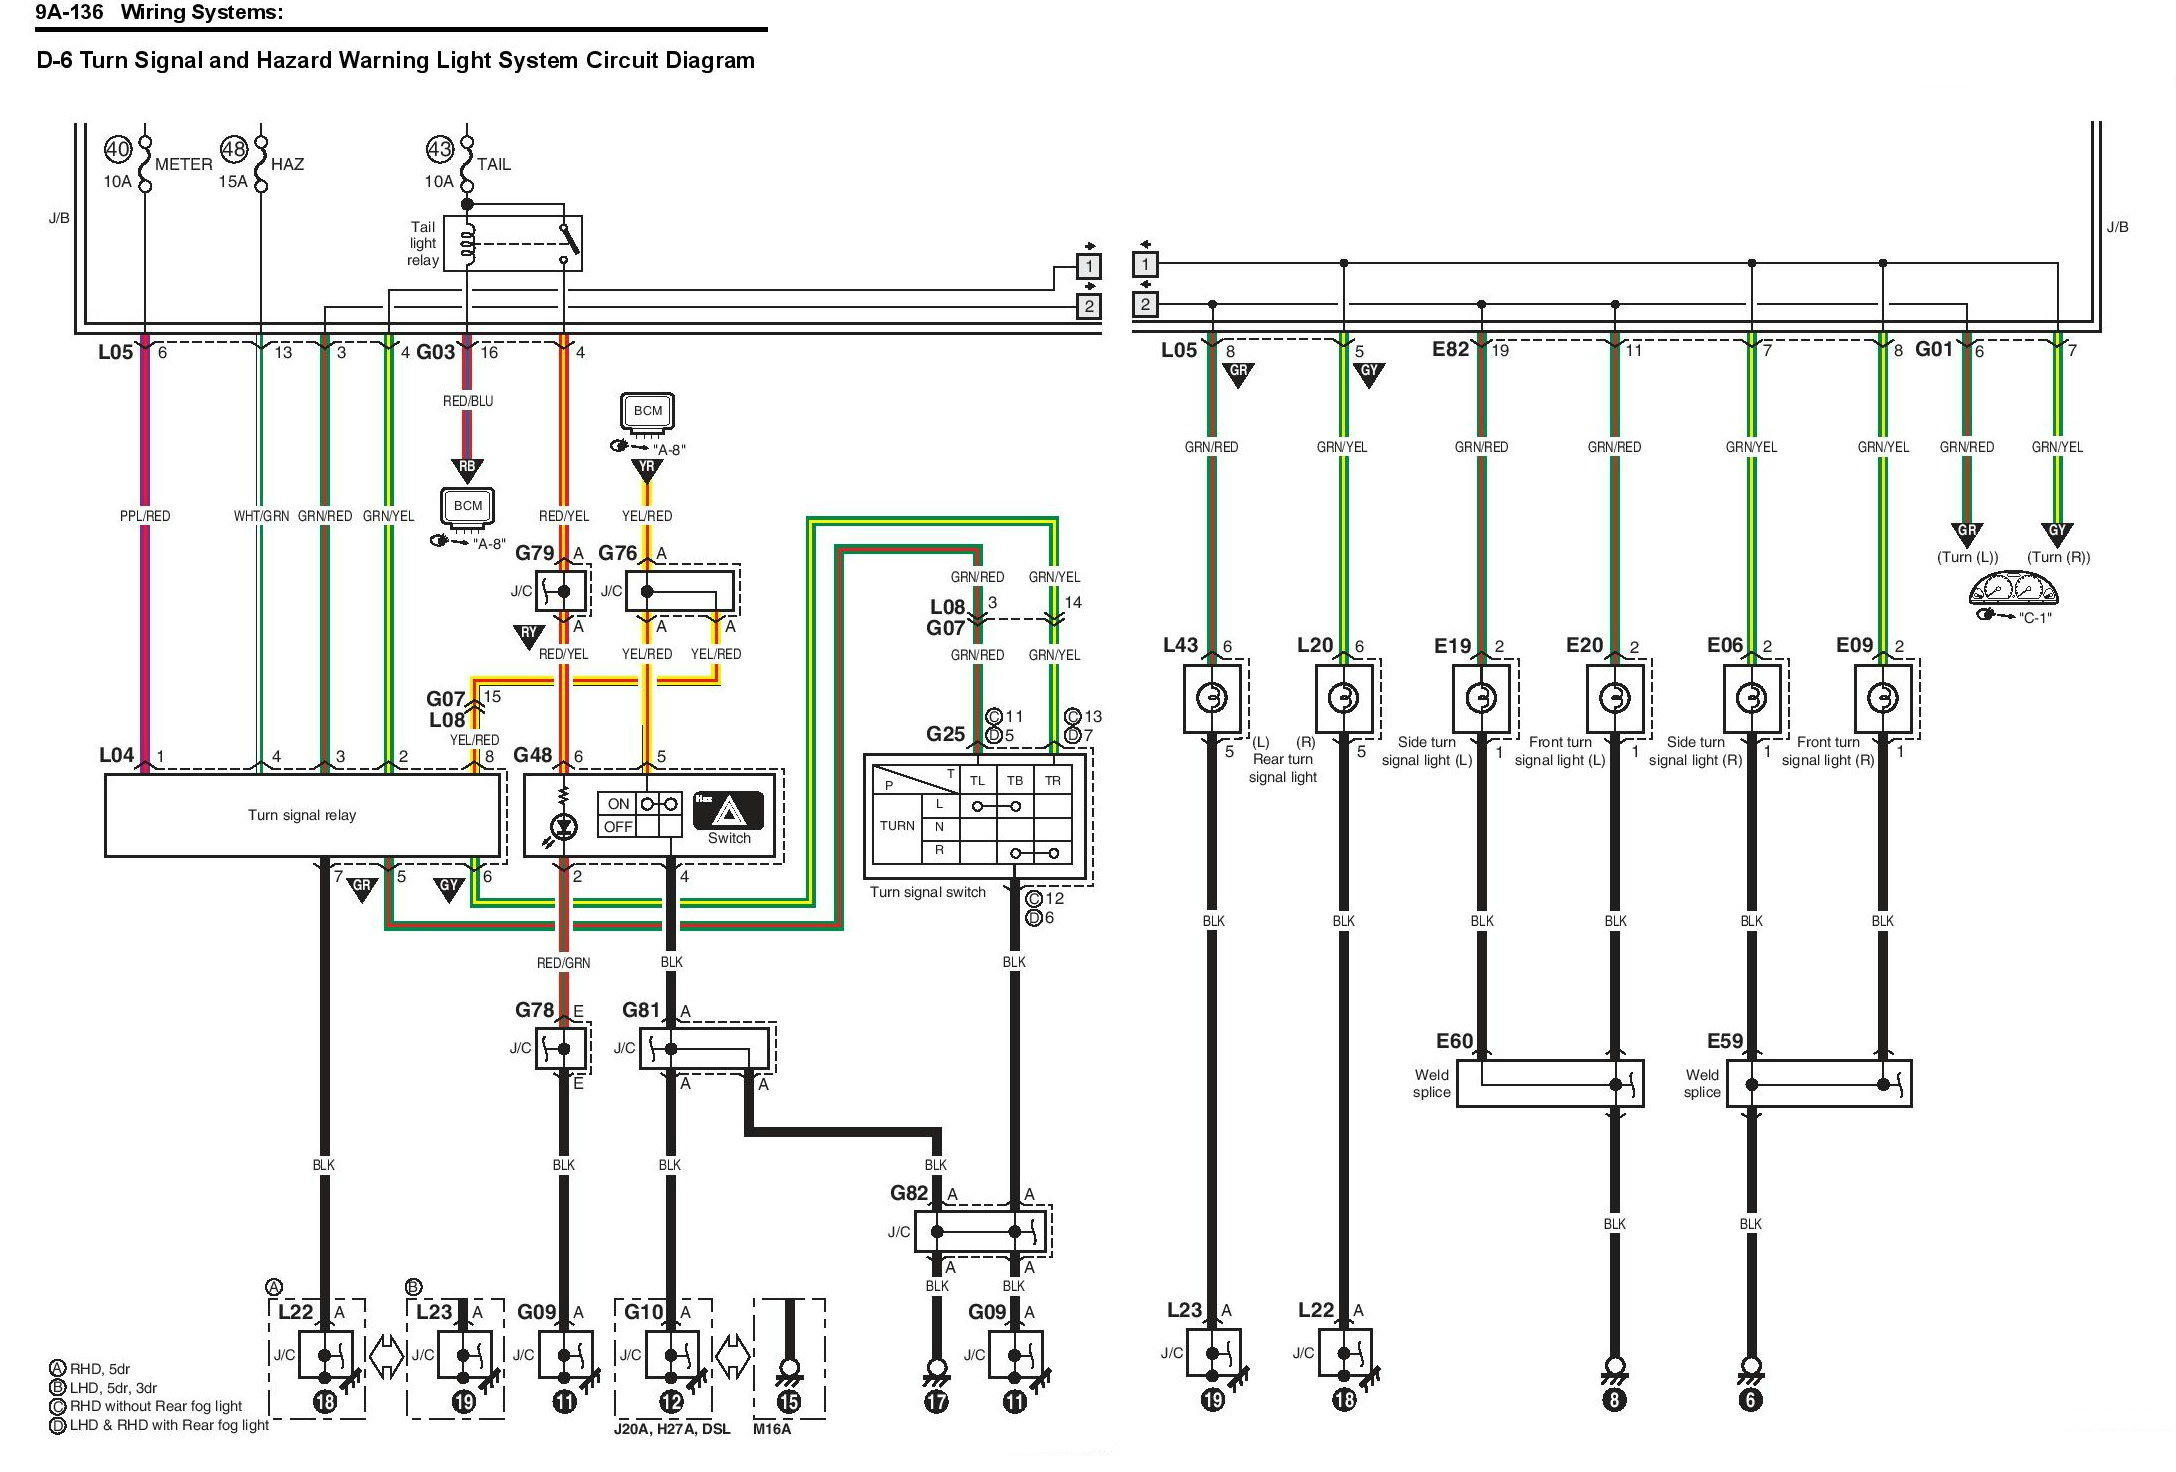 ha4kp0t27r79tiqzg suzuki sx4 audio wiring diagram suzuki wiring diagram instructions 2008 suzuki sx4 radio wiring diagram at crackthecode.co